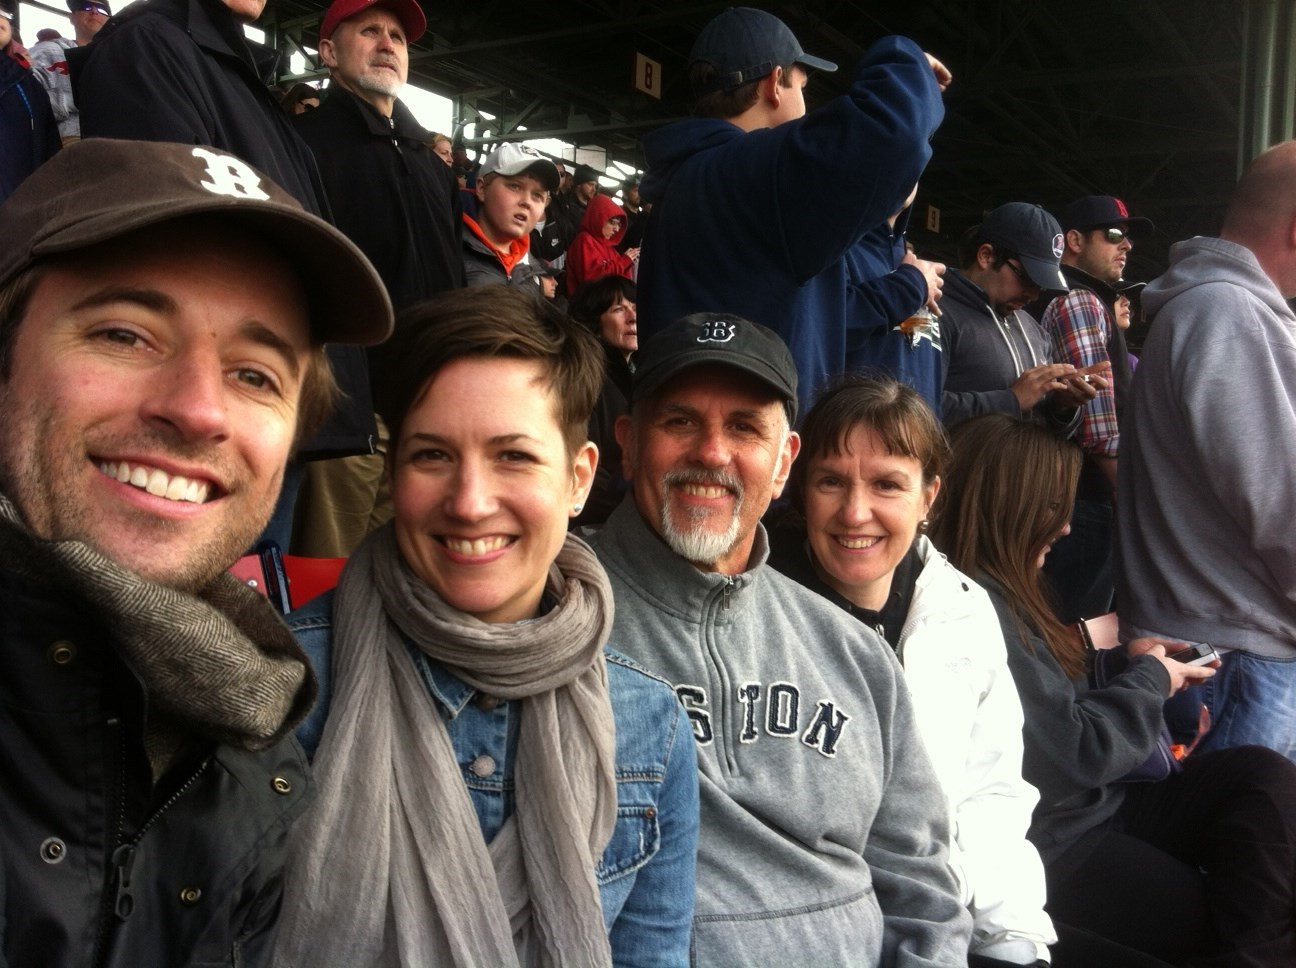 First Red Sox game after Marathon bombing